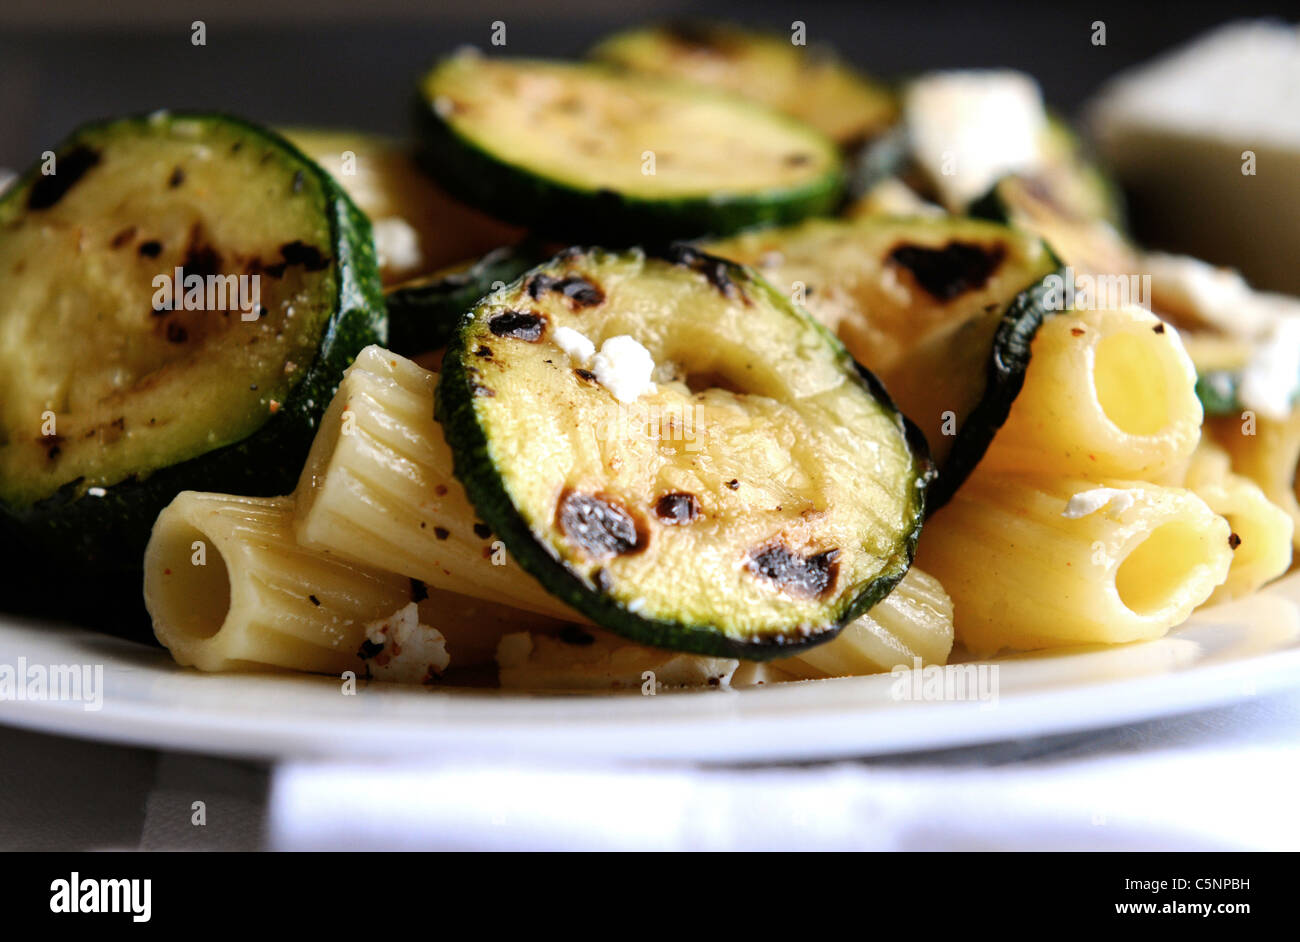 Pasta with fried courgette slices - Stock Image